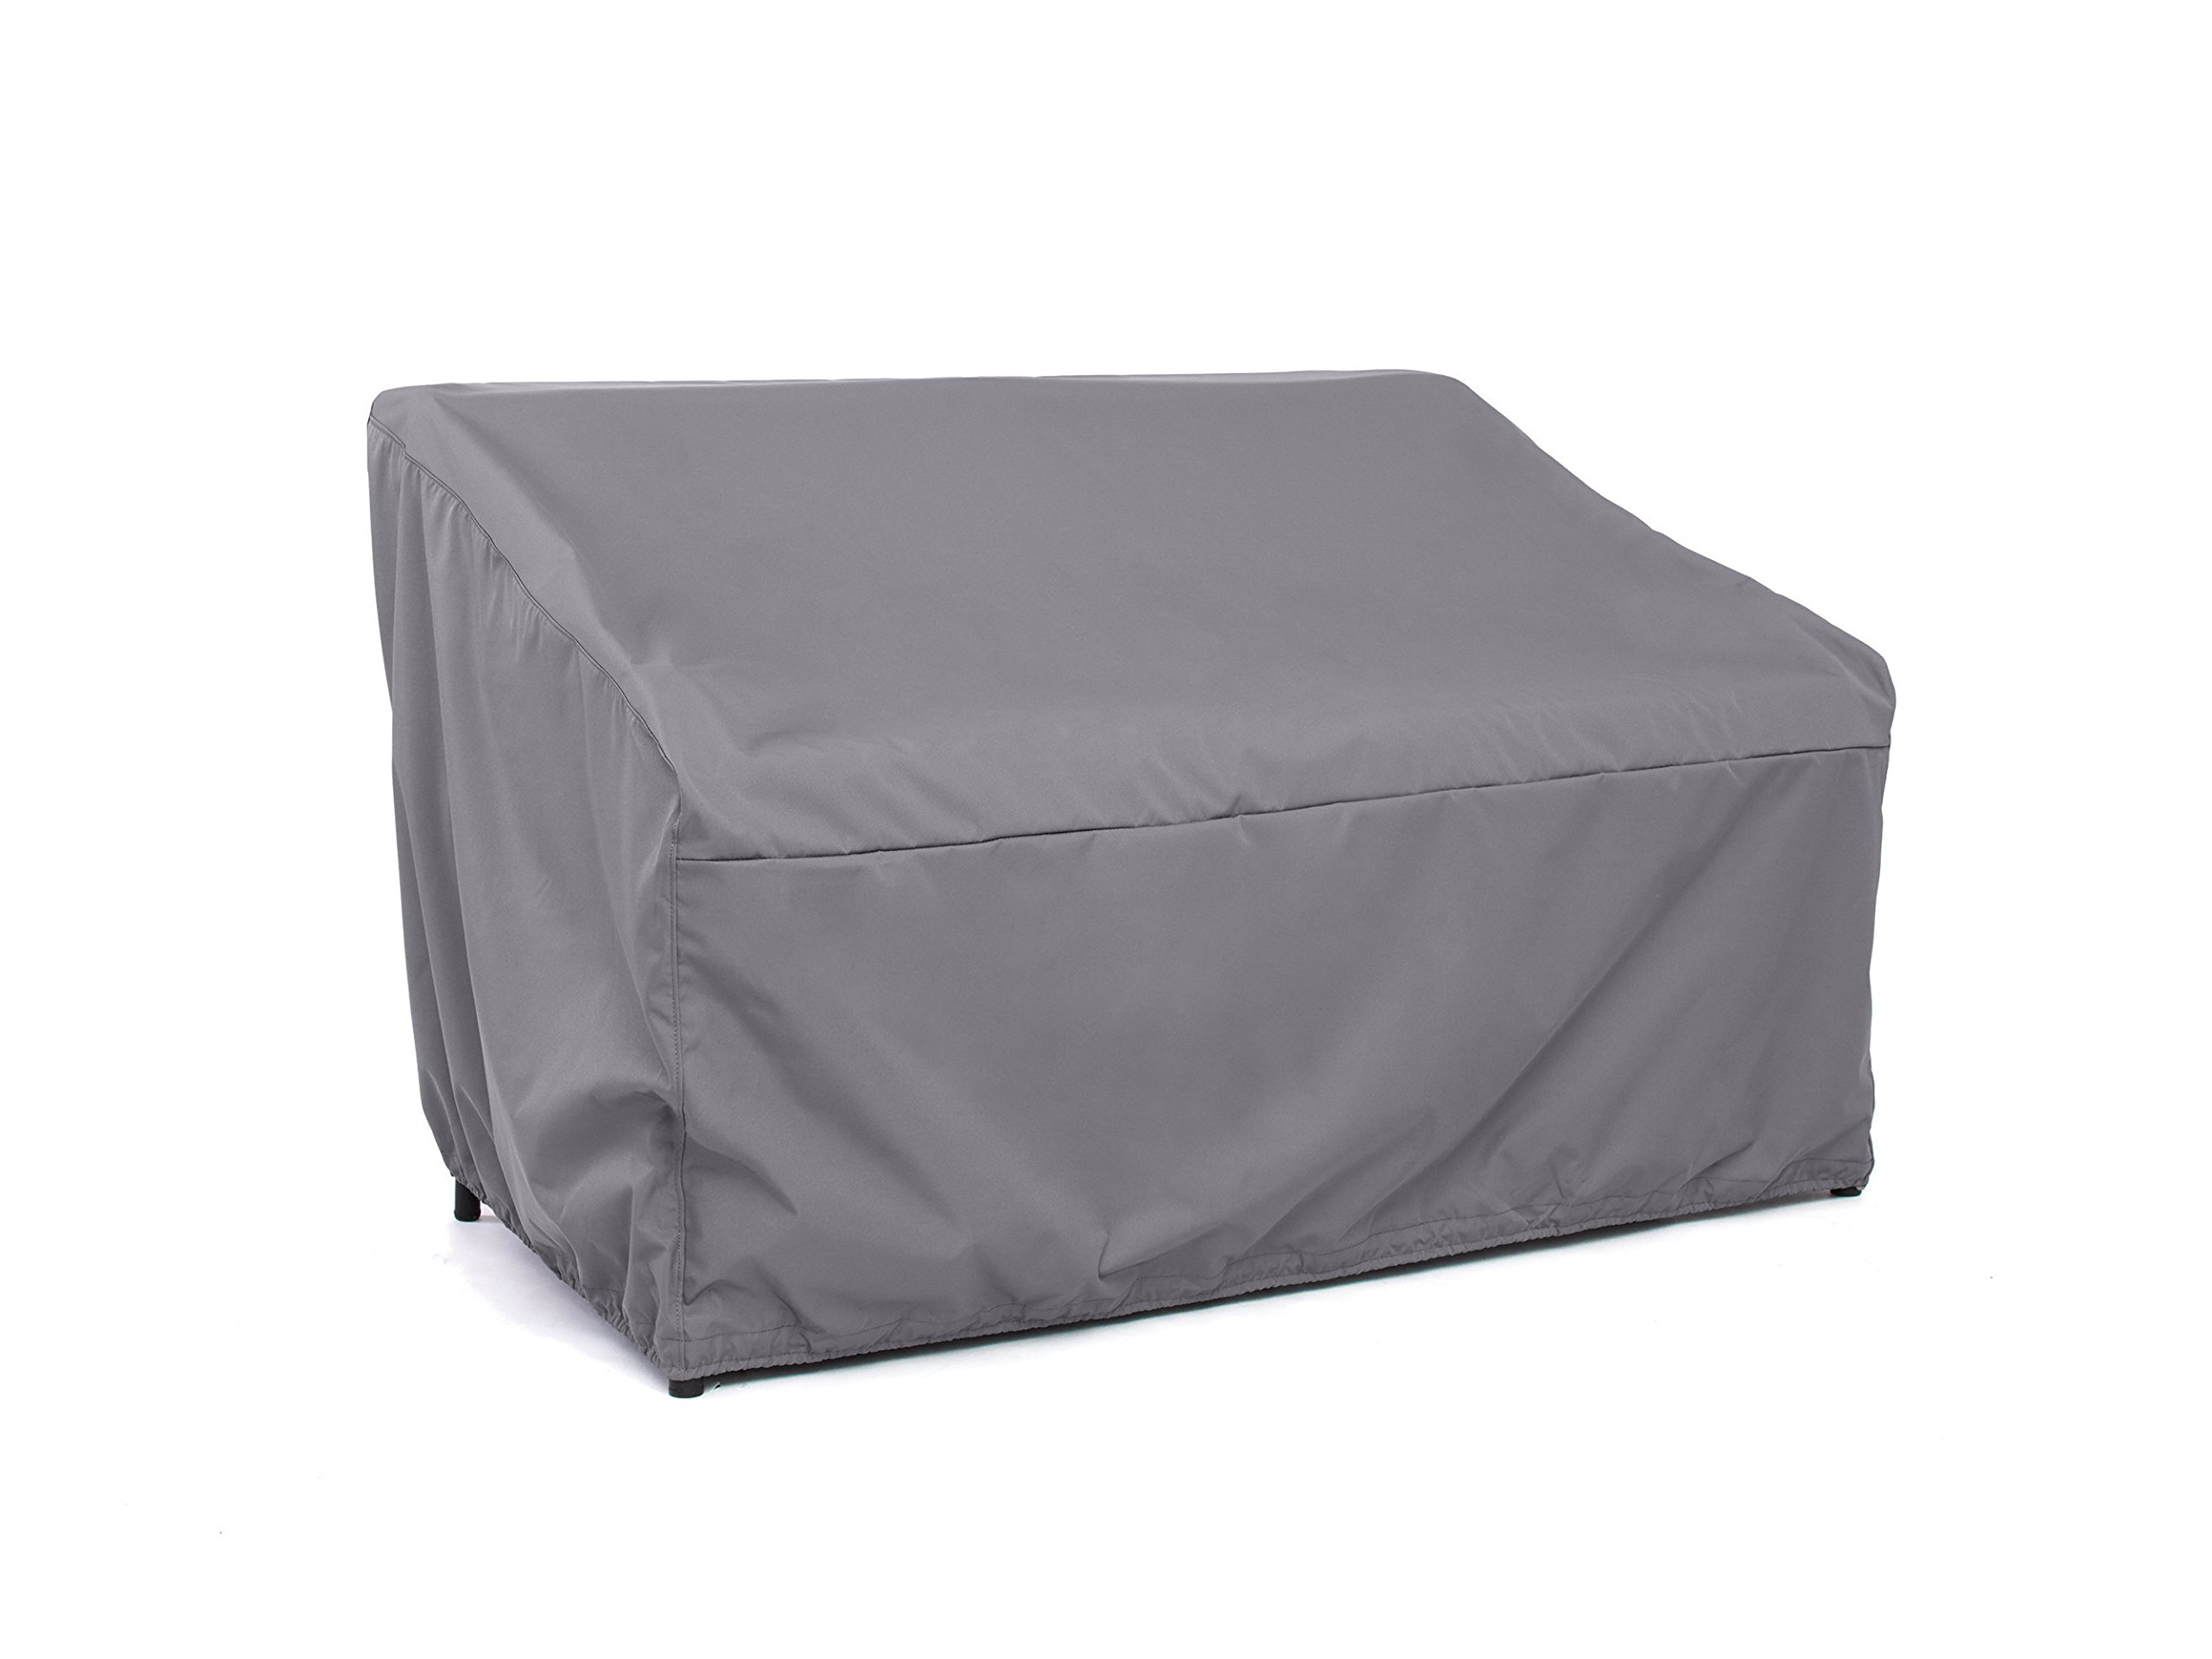 Covermates – Outdoor Patio Glider Cover – 64W x 34D x 38H – Elite Collection – 3 YR Warranty – Year Around Protection - Charcoal